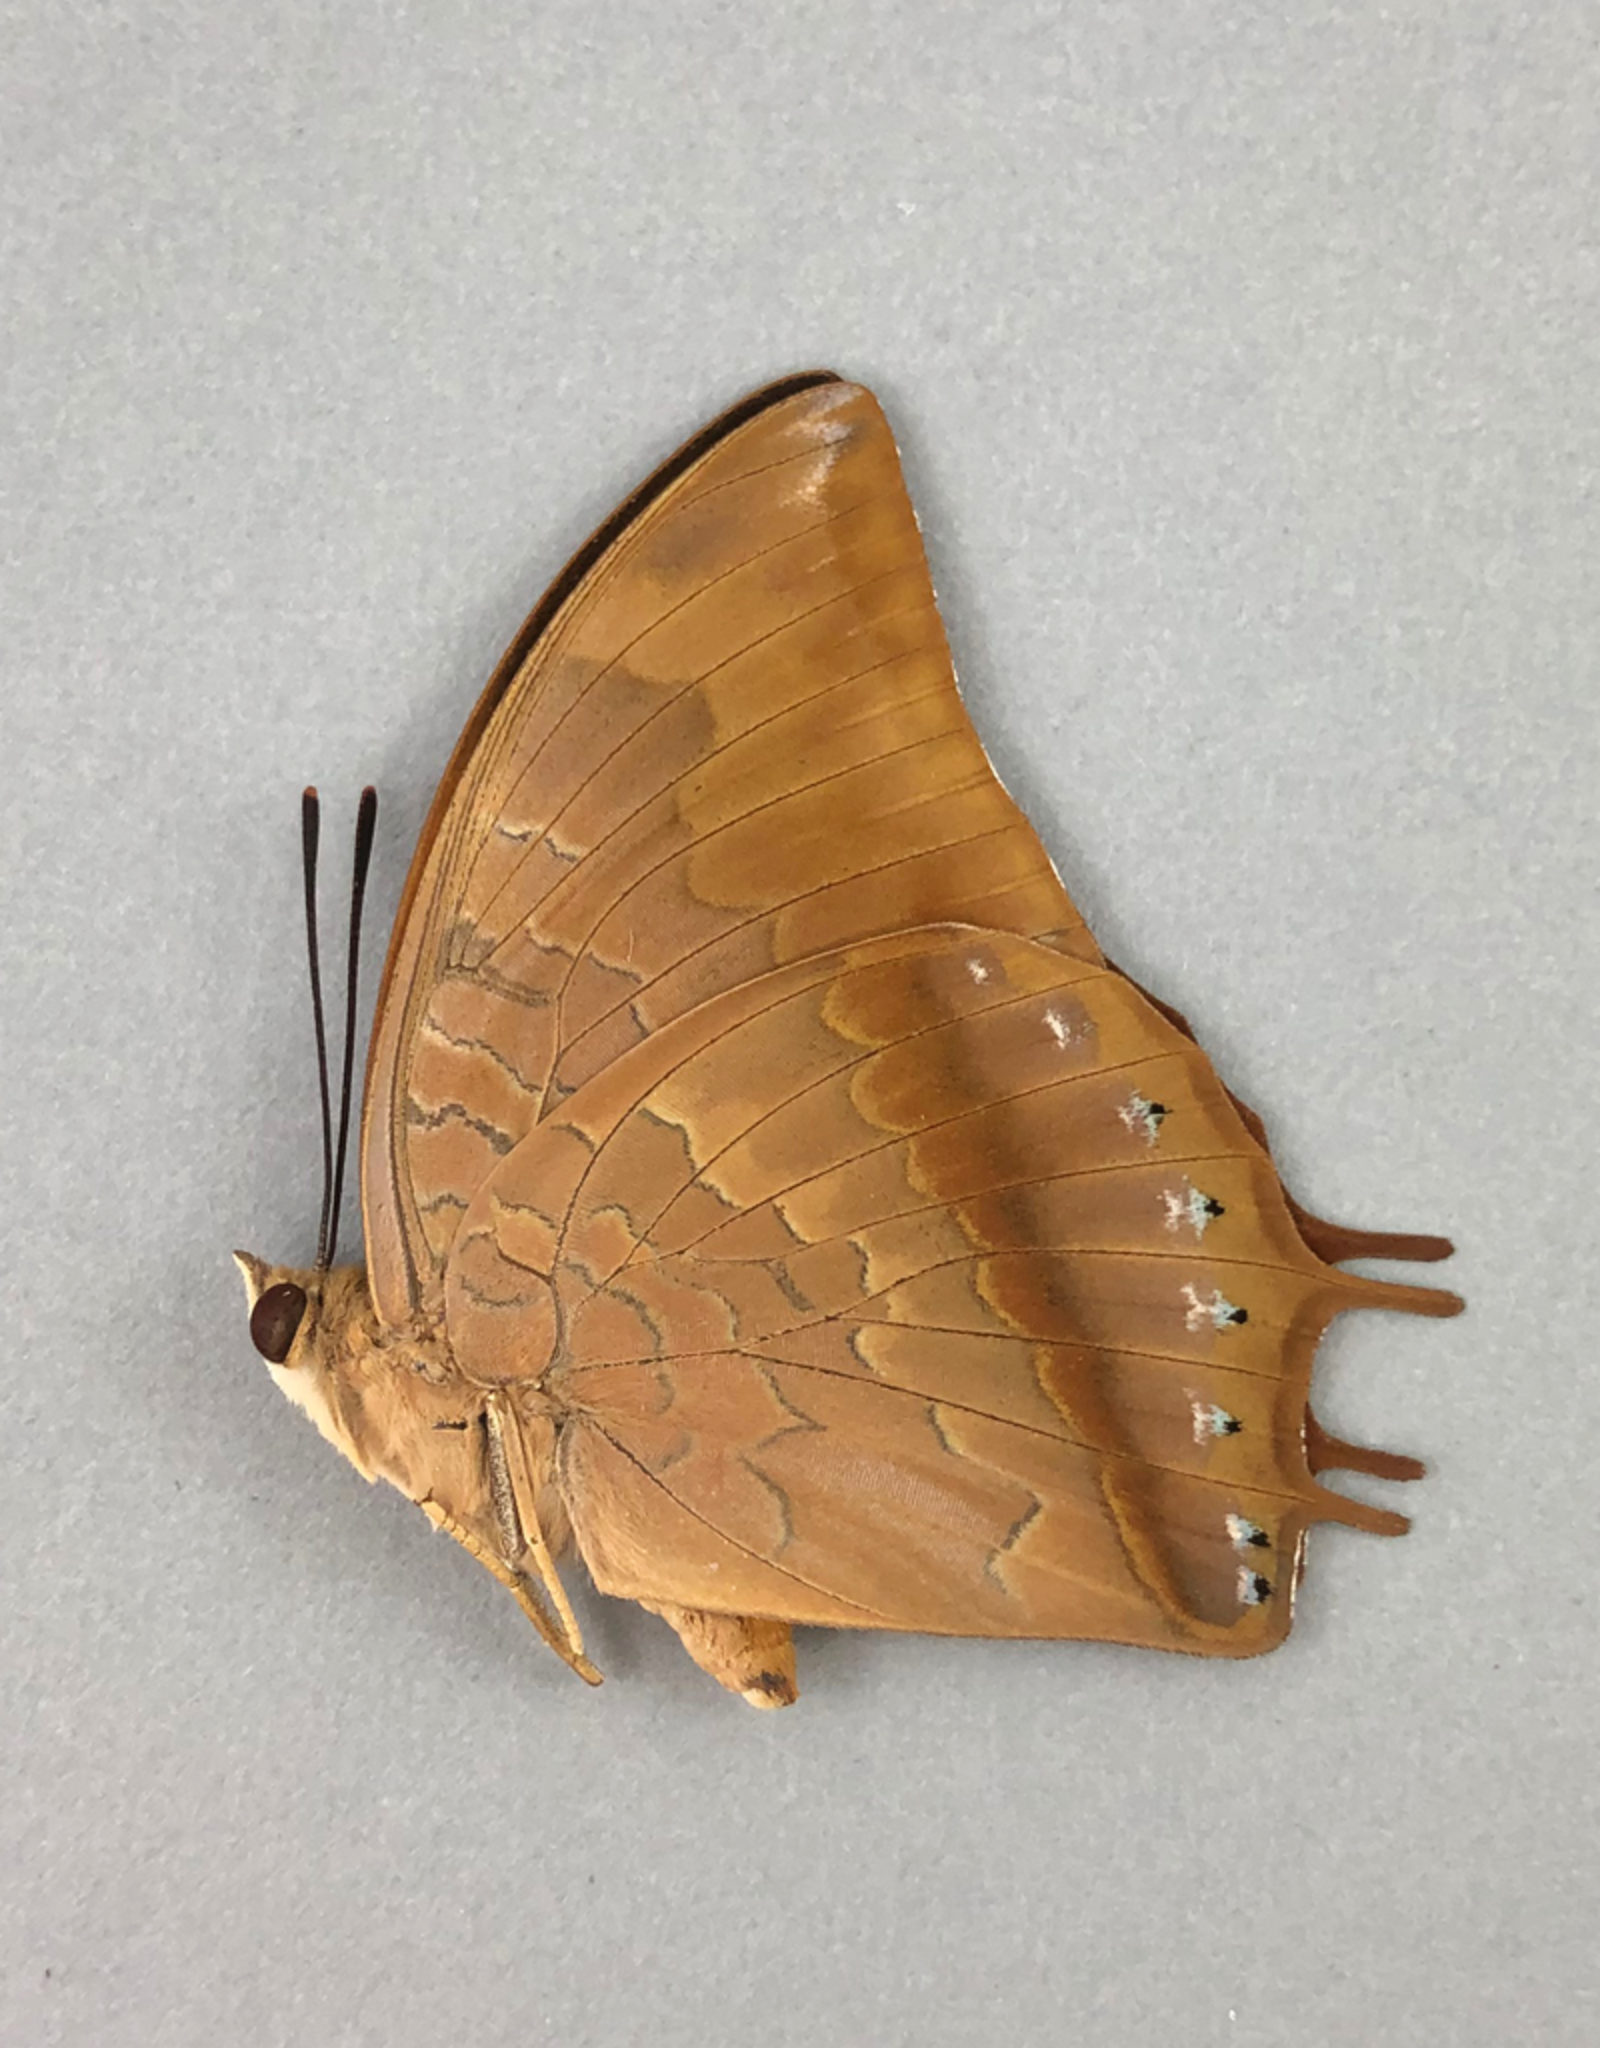 Charaxes amycus M A1- Philippines